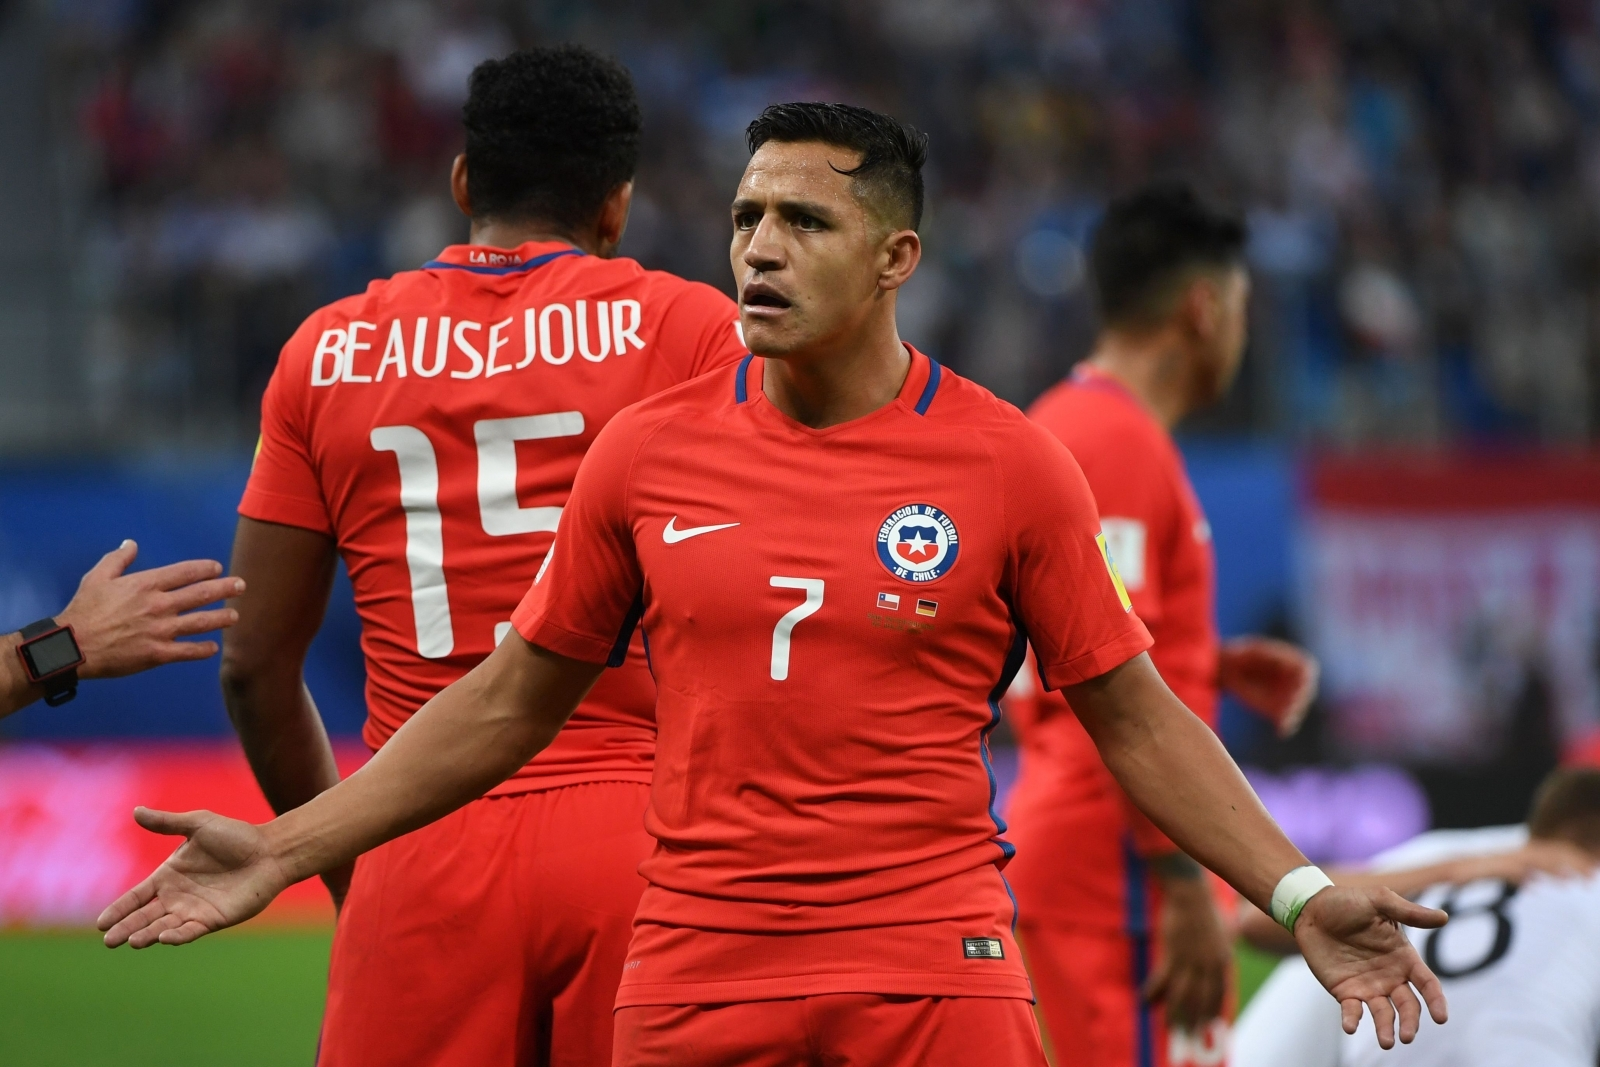 Arsene Wenger rules out Arsenal selling Alexis Sanchez to PSG